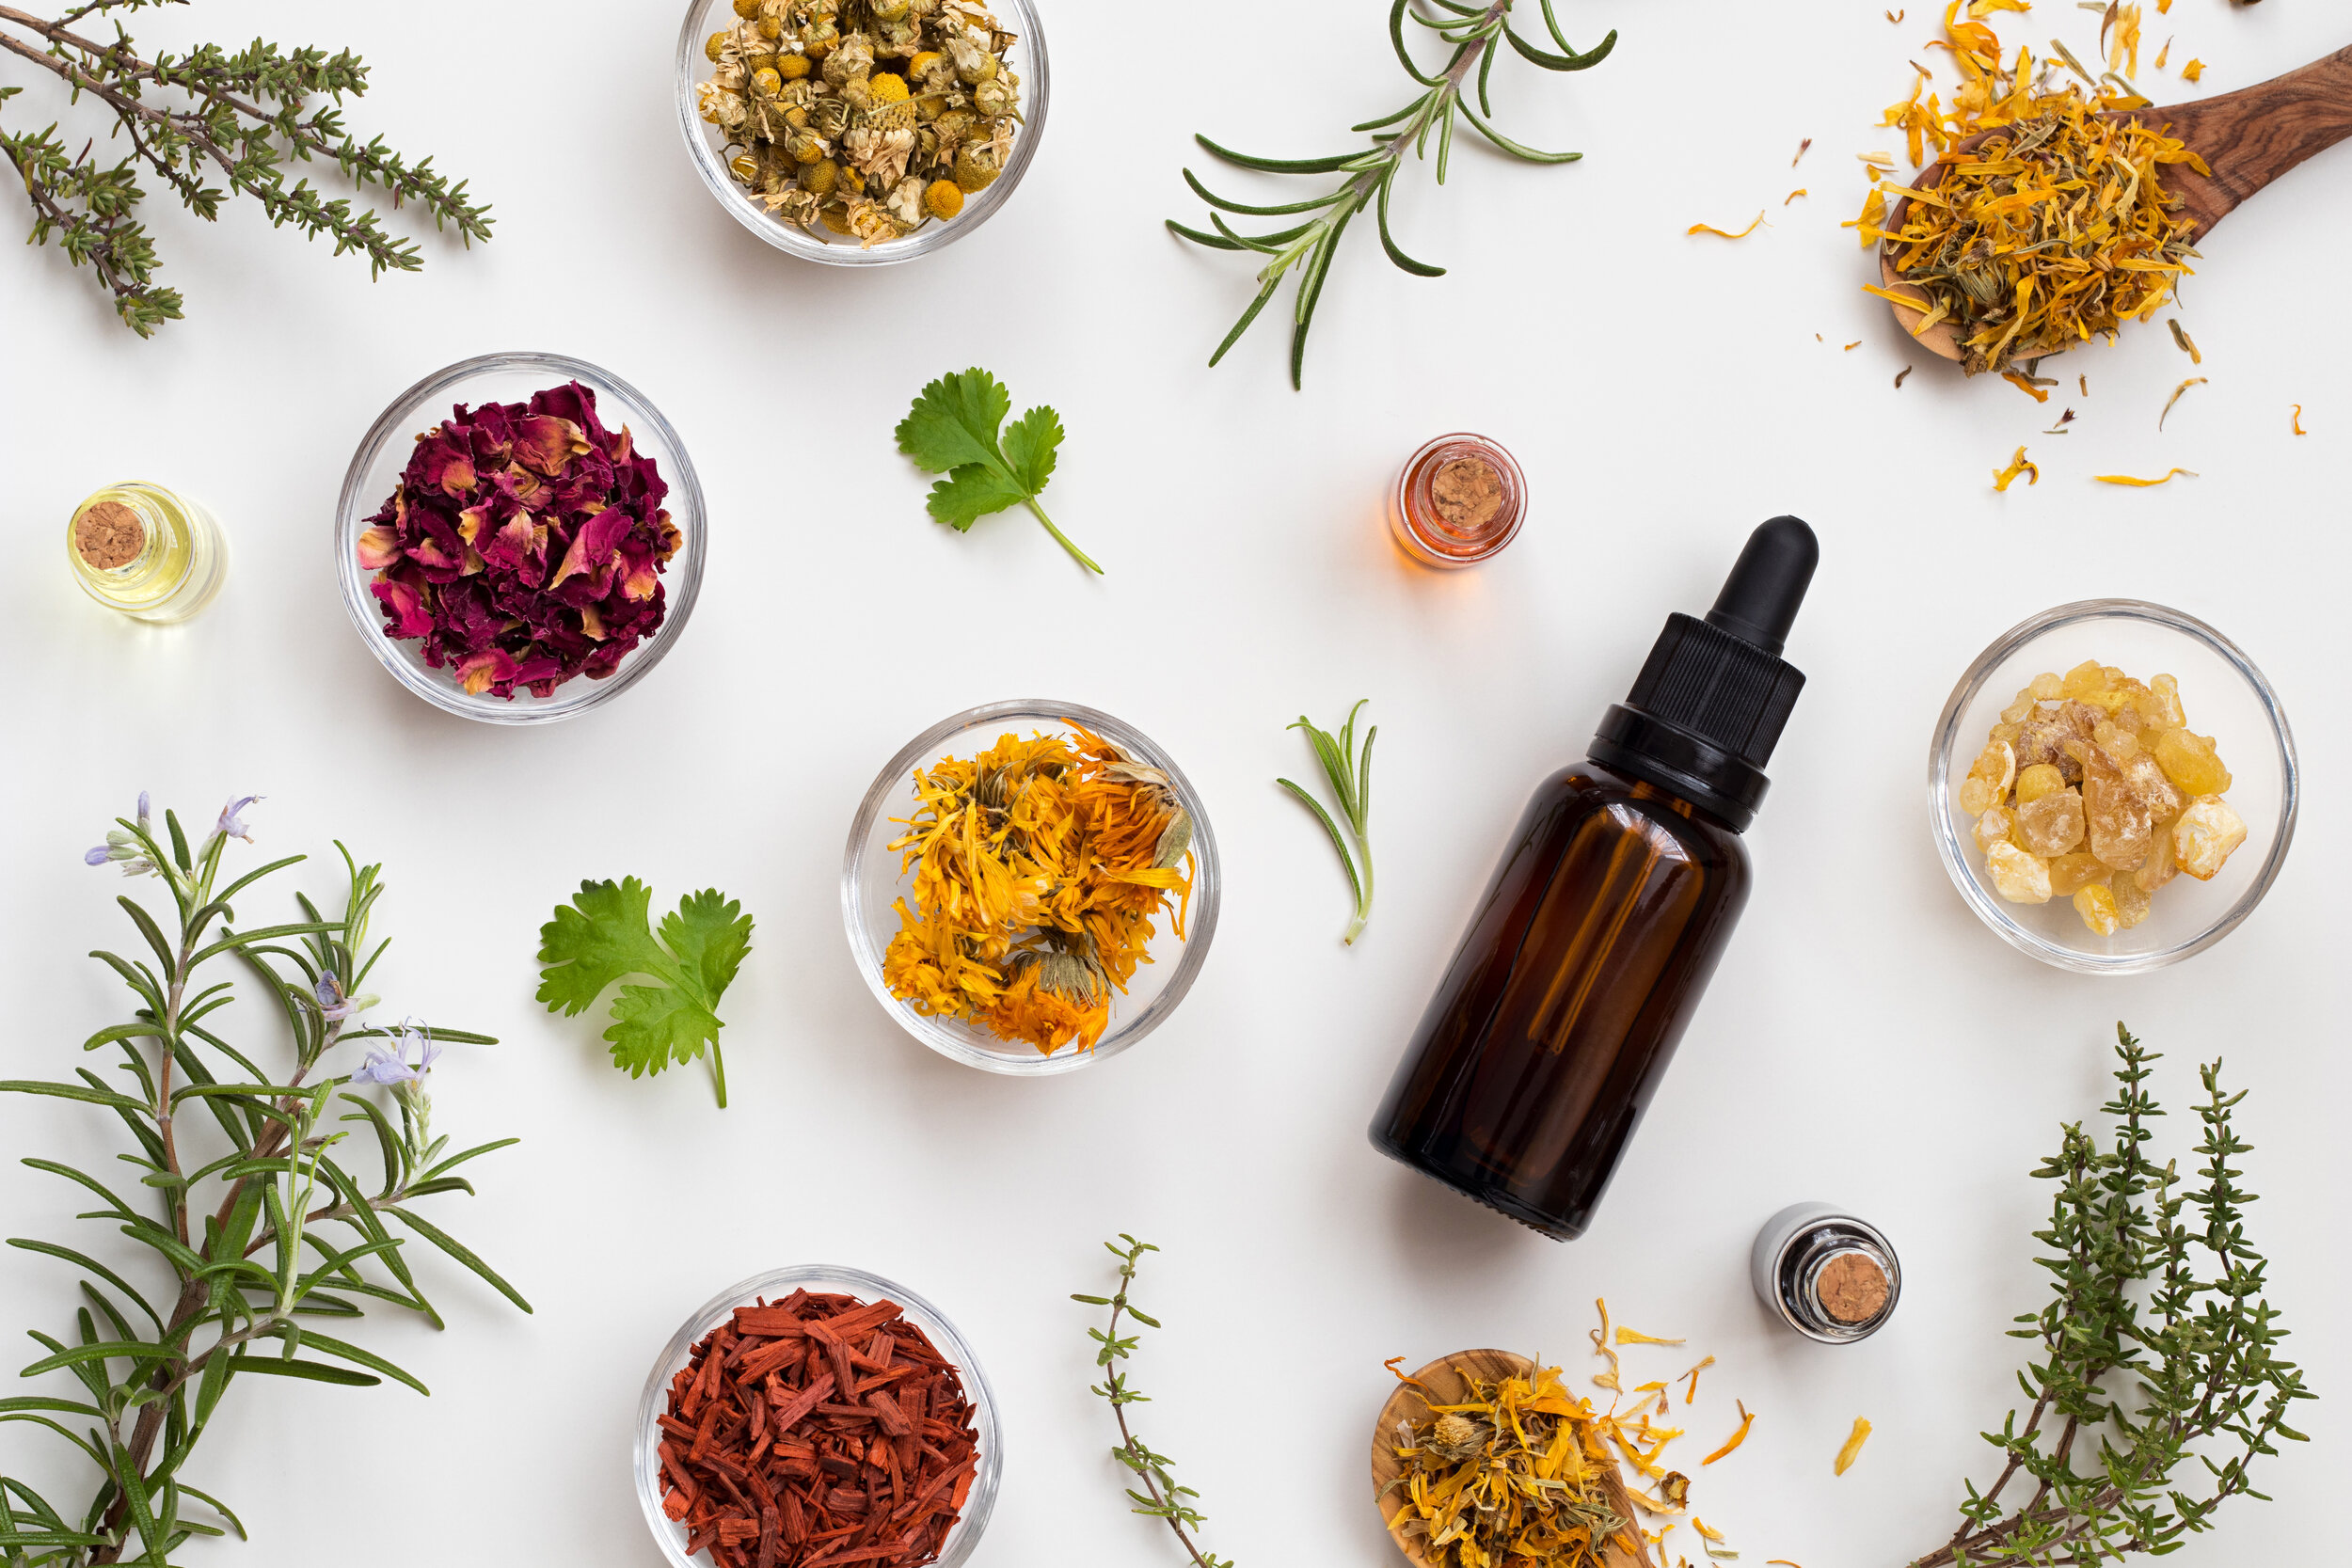 Does Naturopathic Medicine Really Work? Your Naturopathy Questions Answered!